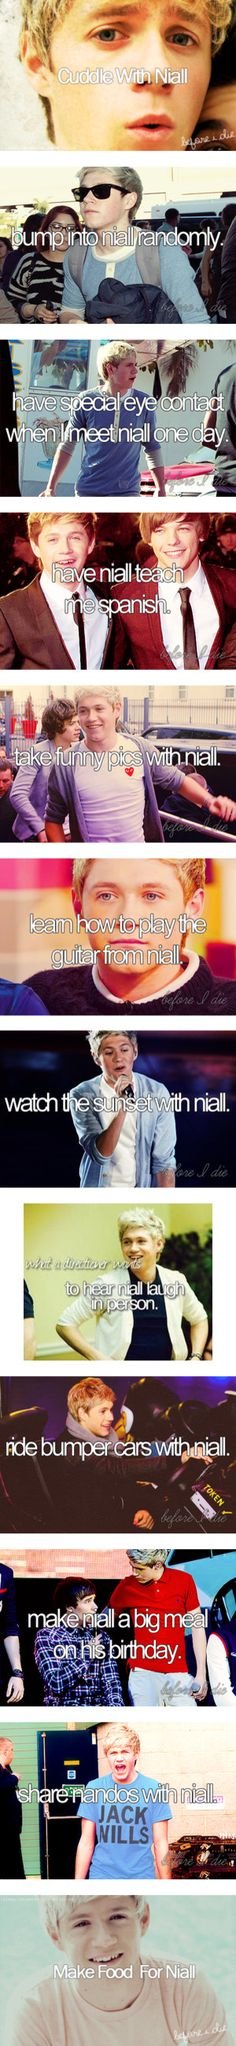 Oh yeah this is like my life played out. It should start with bump into niall randomly tho...then from there we end with get married and live hapily ever after! =D